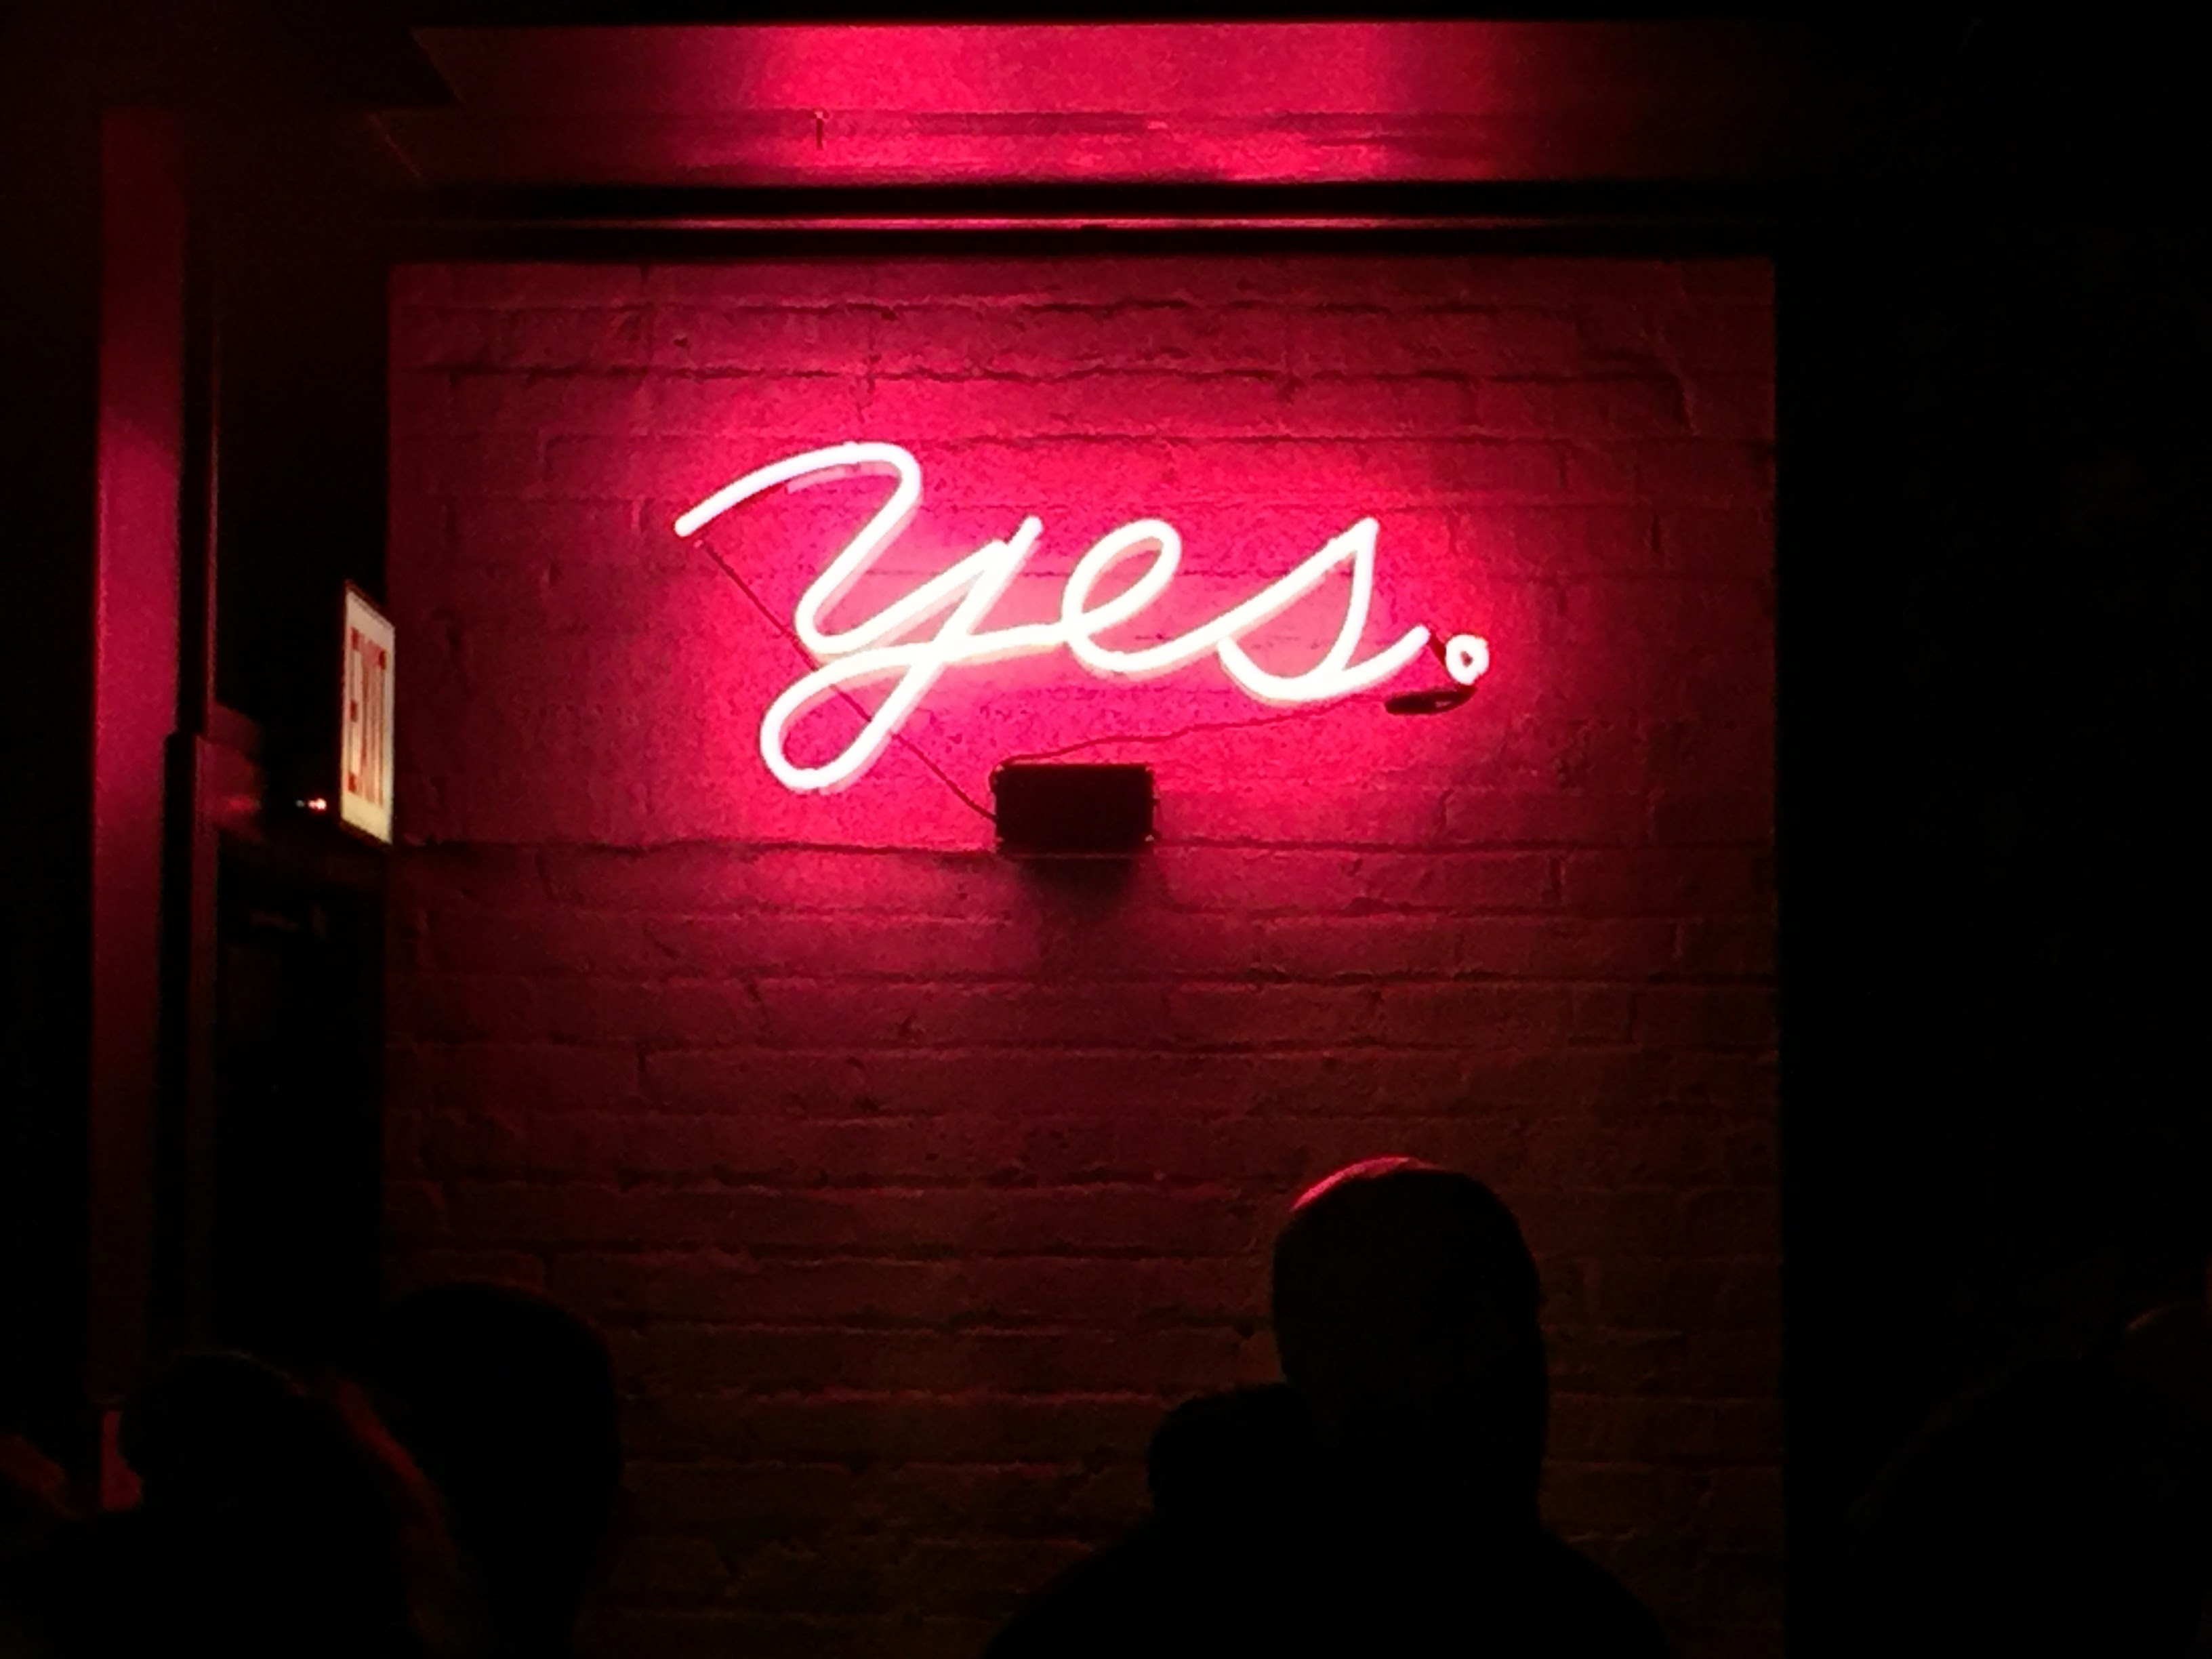 Pink YES Neon Sign, Bar, Light, Neon, Pink, HQ Photo